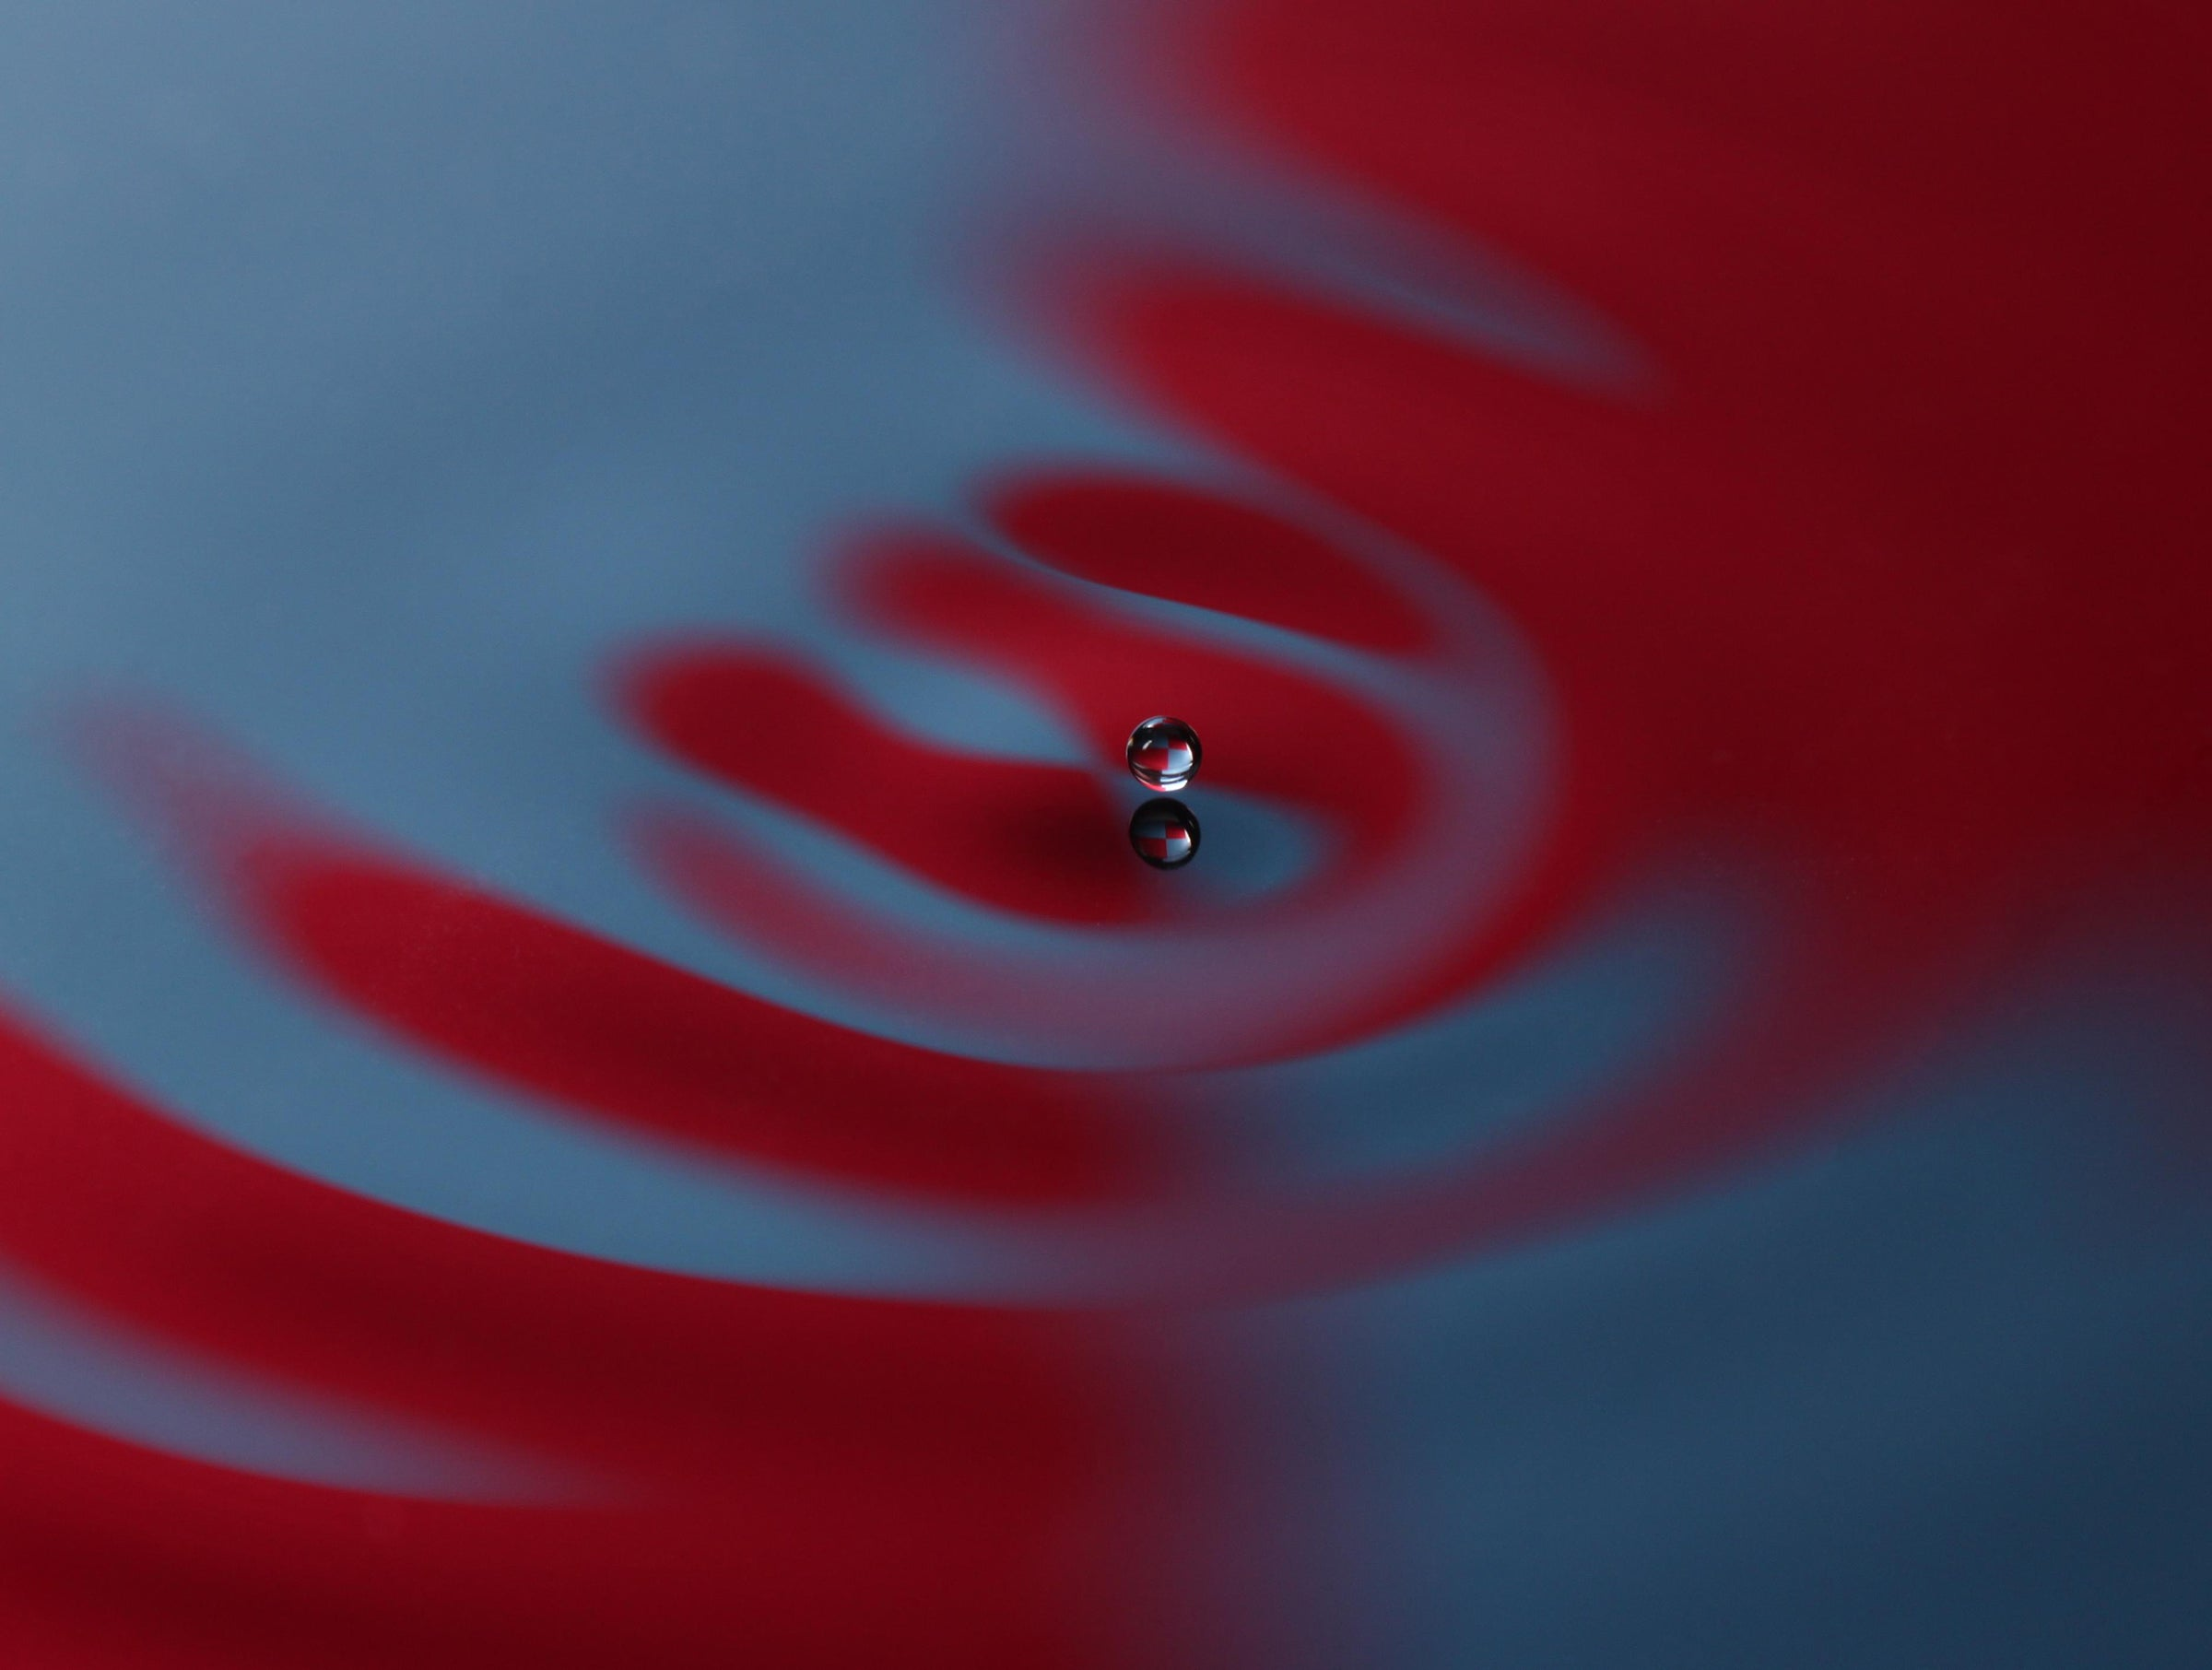 a droplet bounces across a red and blue water surface